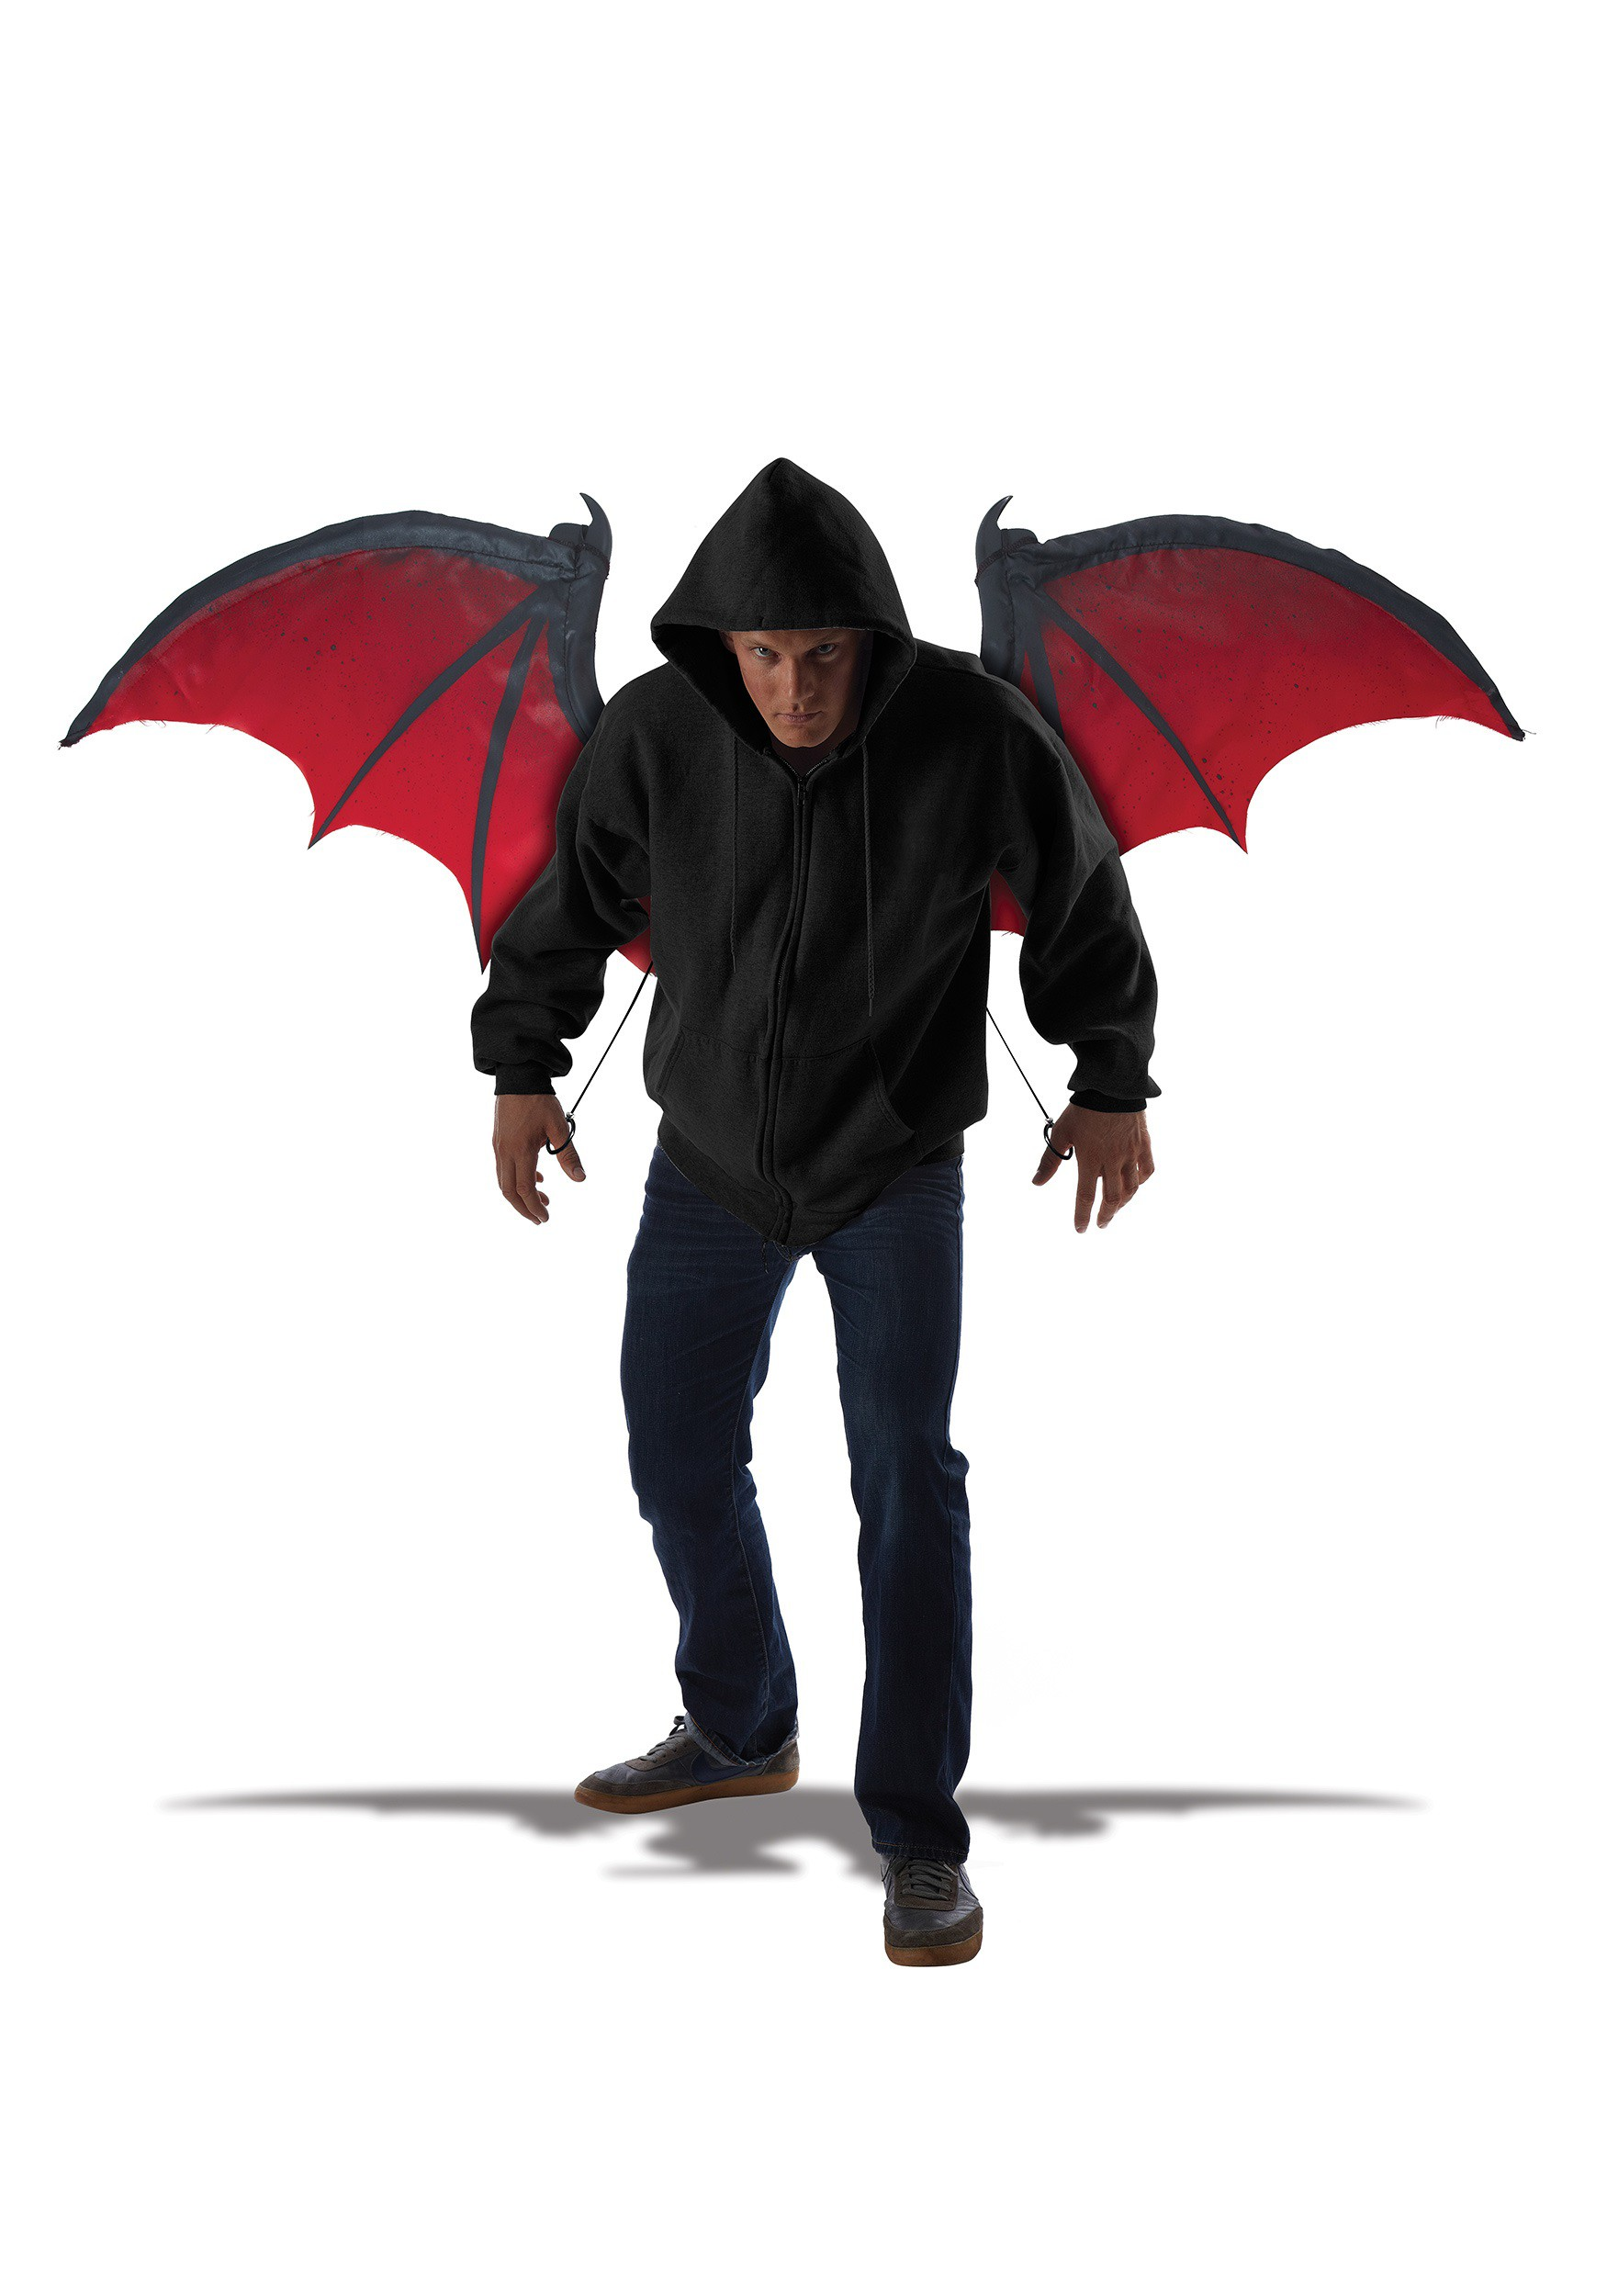 bloodnight wings accessory bloodnight wings accessory alt1 bloodnight wings accessory alt2 - Accessories For Halloween Costumes